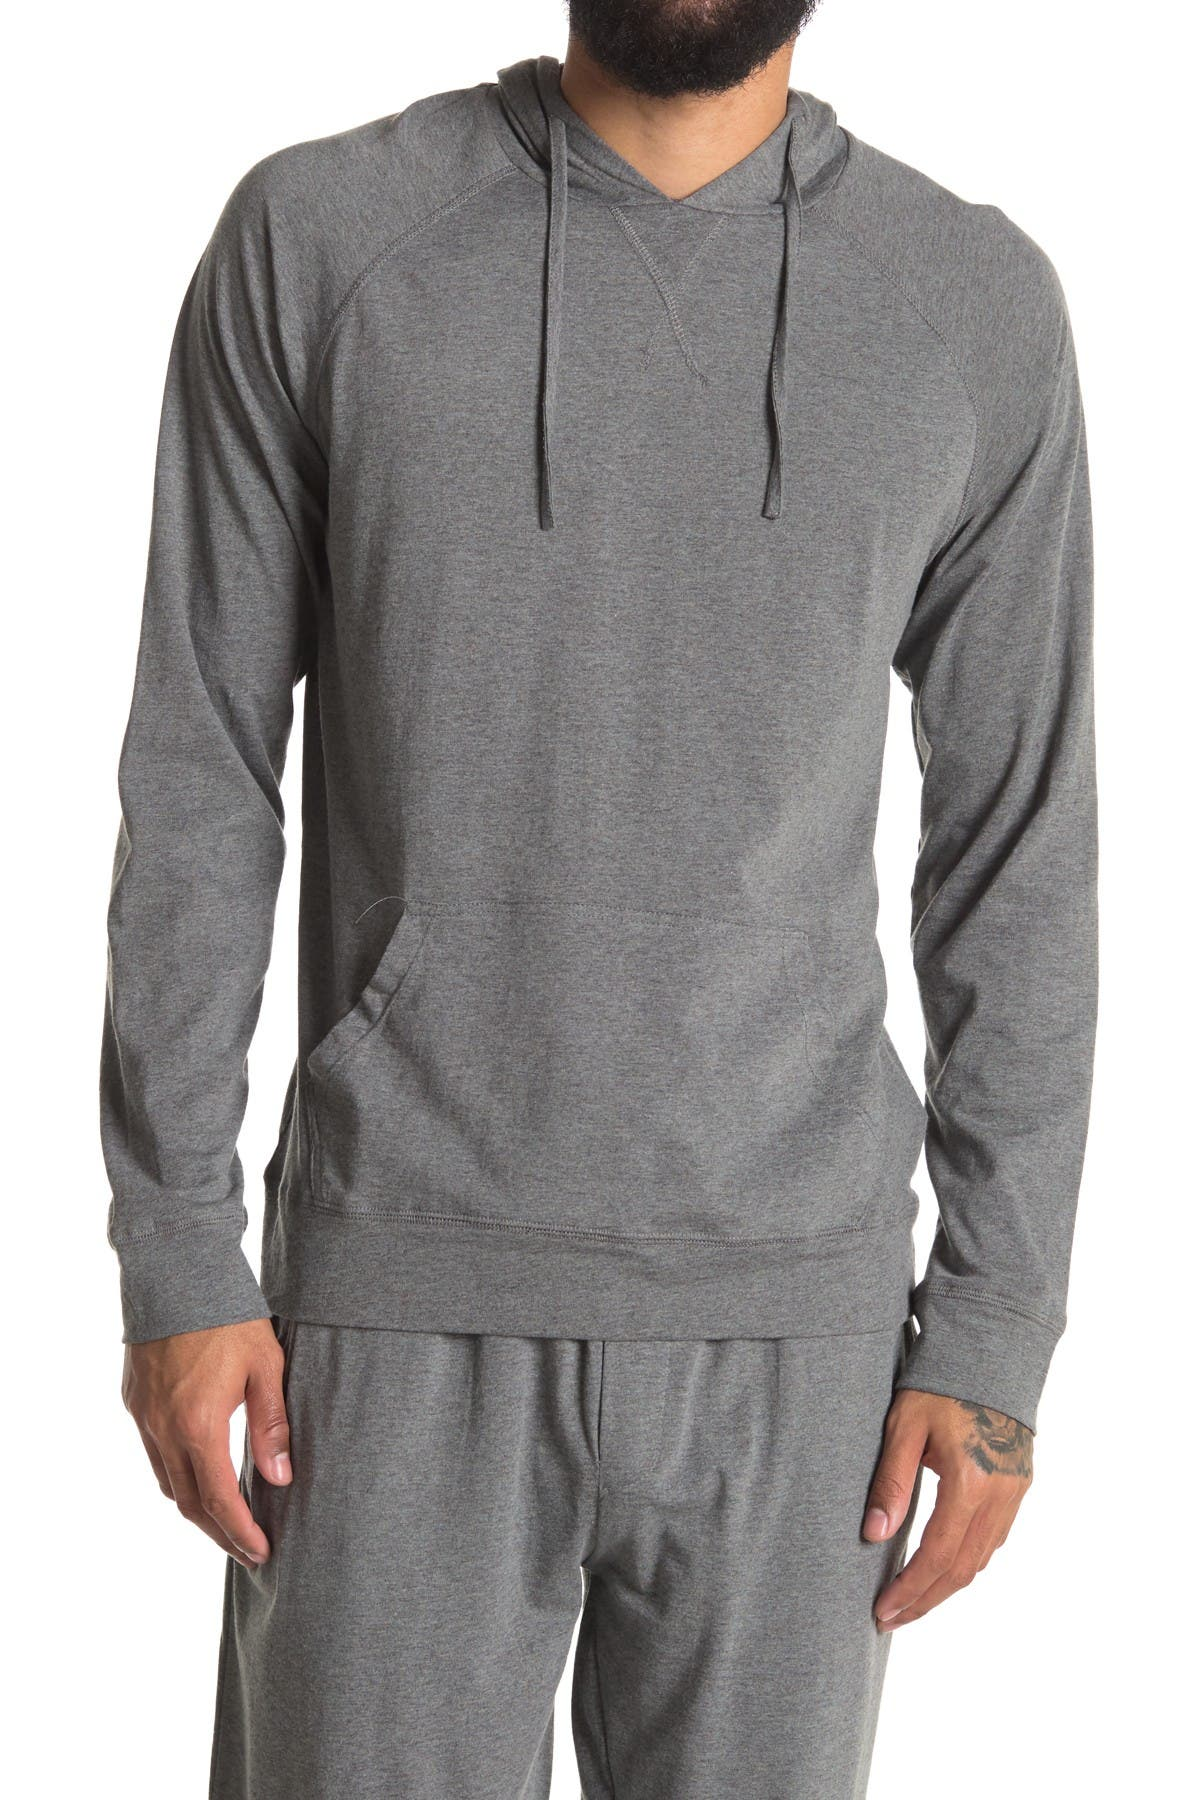 Image of Unsimply Stitched Soft Pullover Hoodie